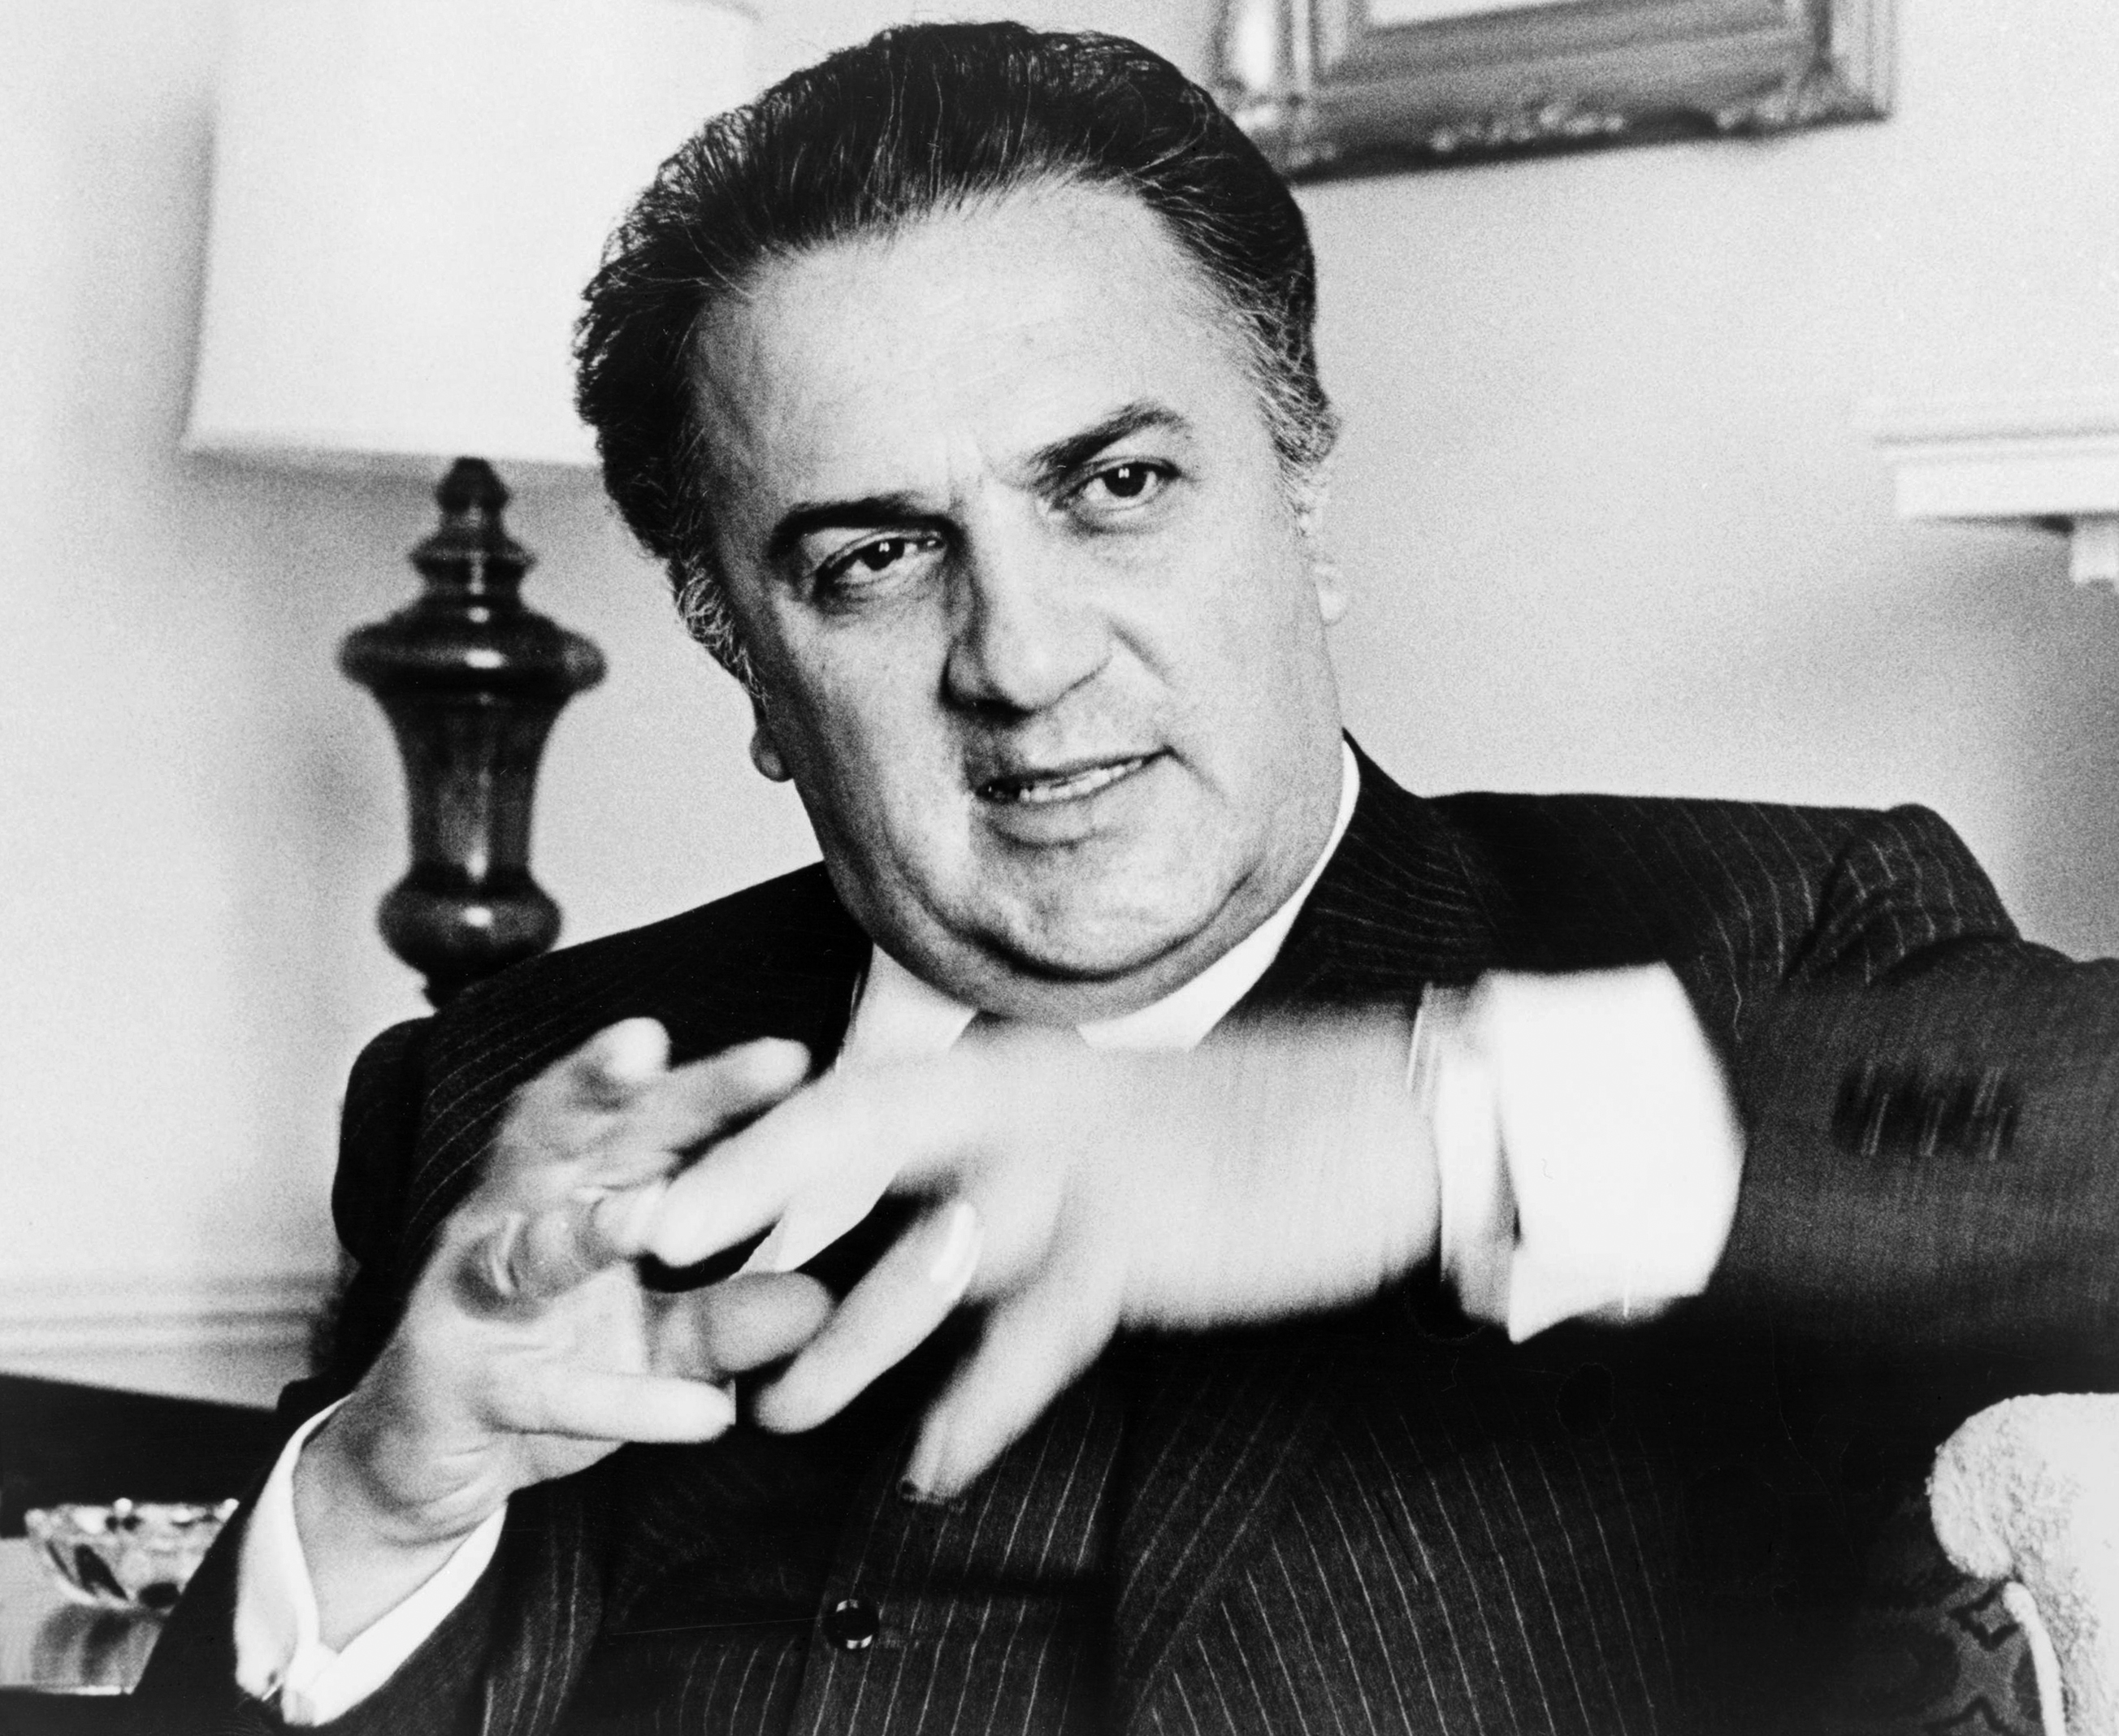 Information |Description=Federico Fellini |Source=Library of Congress. New York World-Telegram & Sun Collection. http://hdl.loc.gov/loc.pnp/cph.3c14985 |Date=1965 |Author=Walter Albertin, World Telegram staff photographer |Permi)